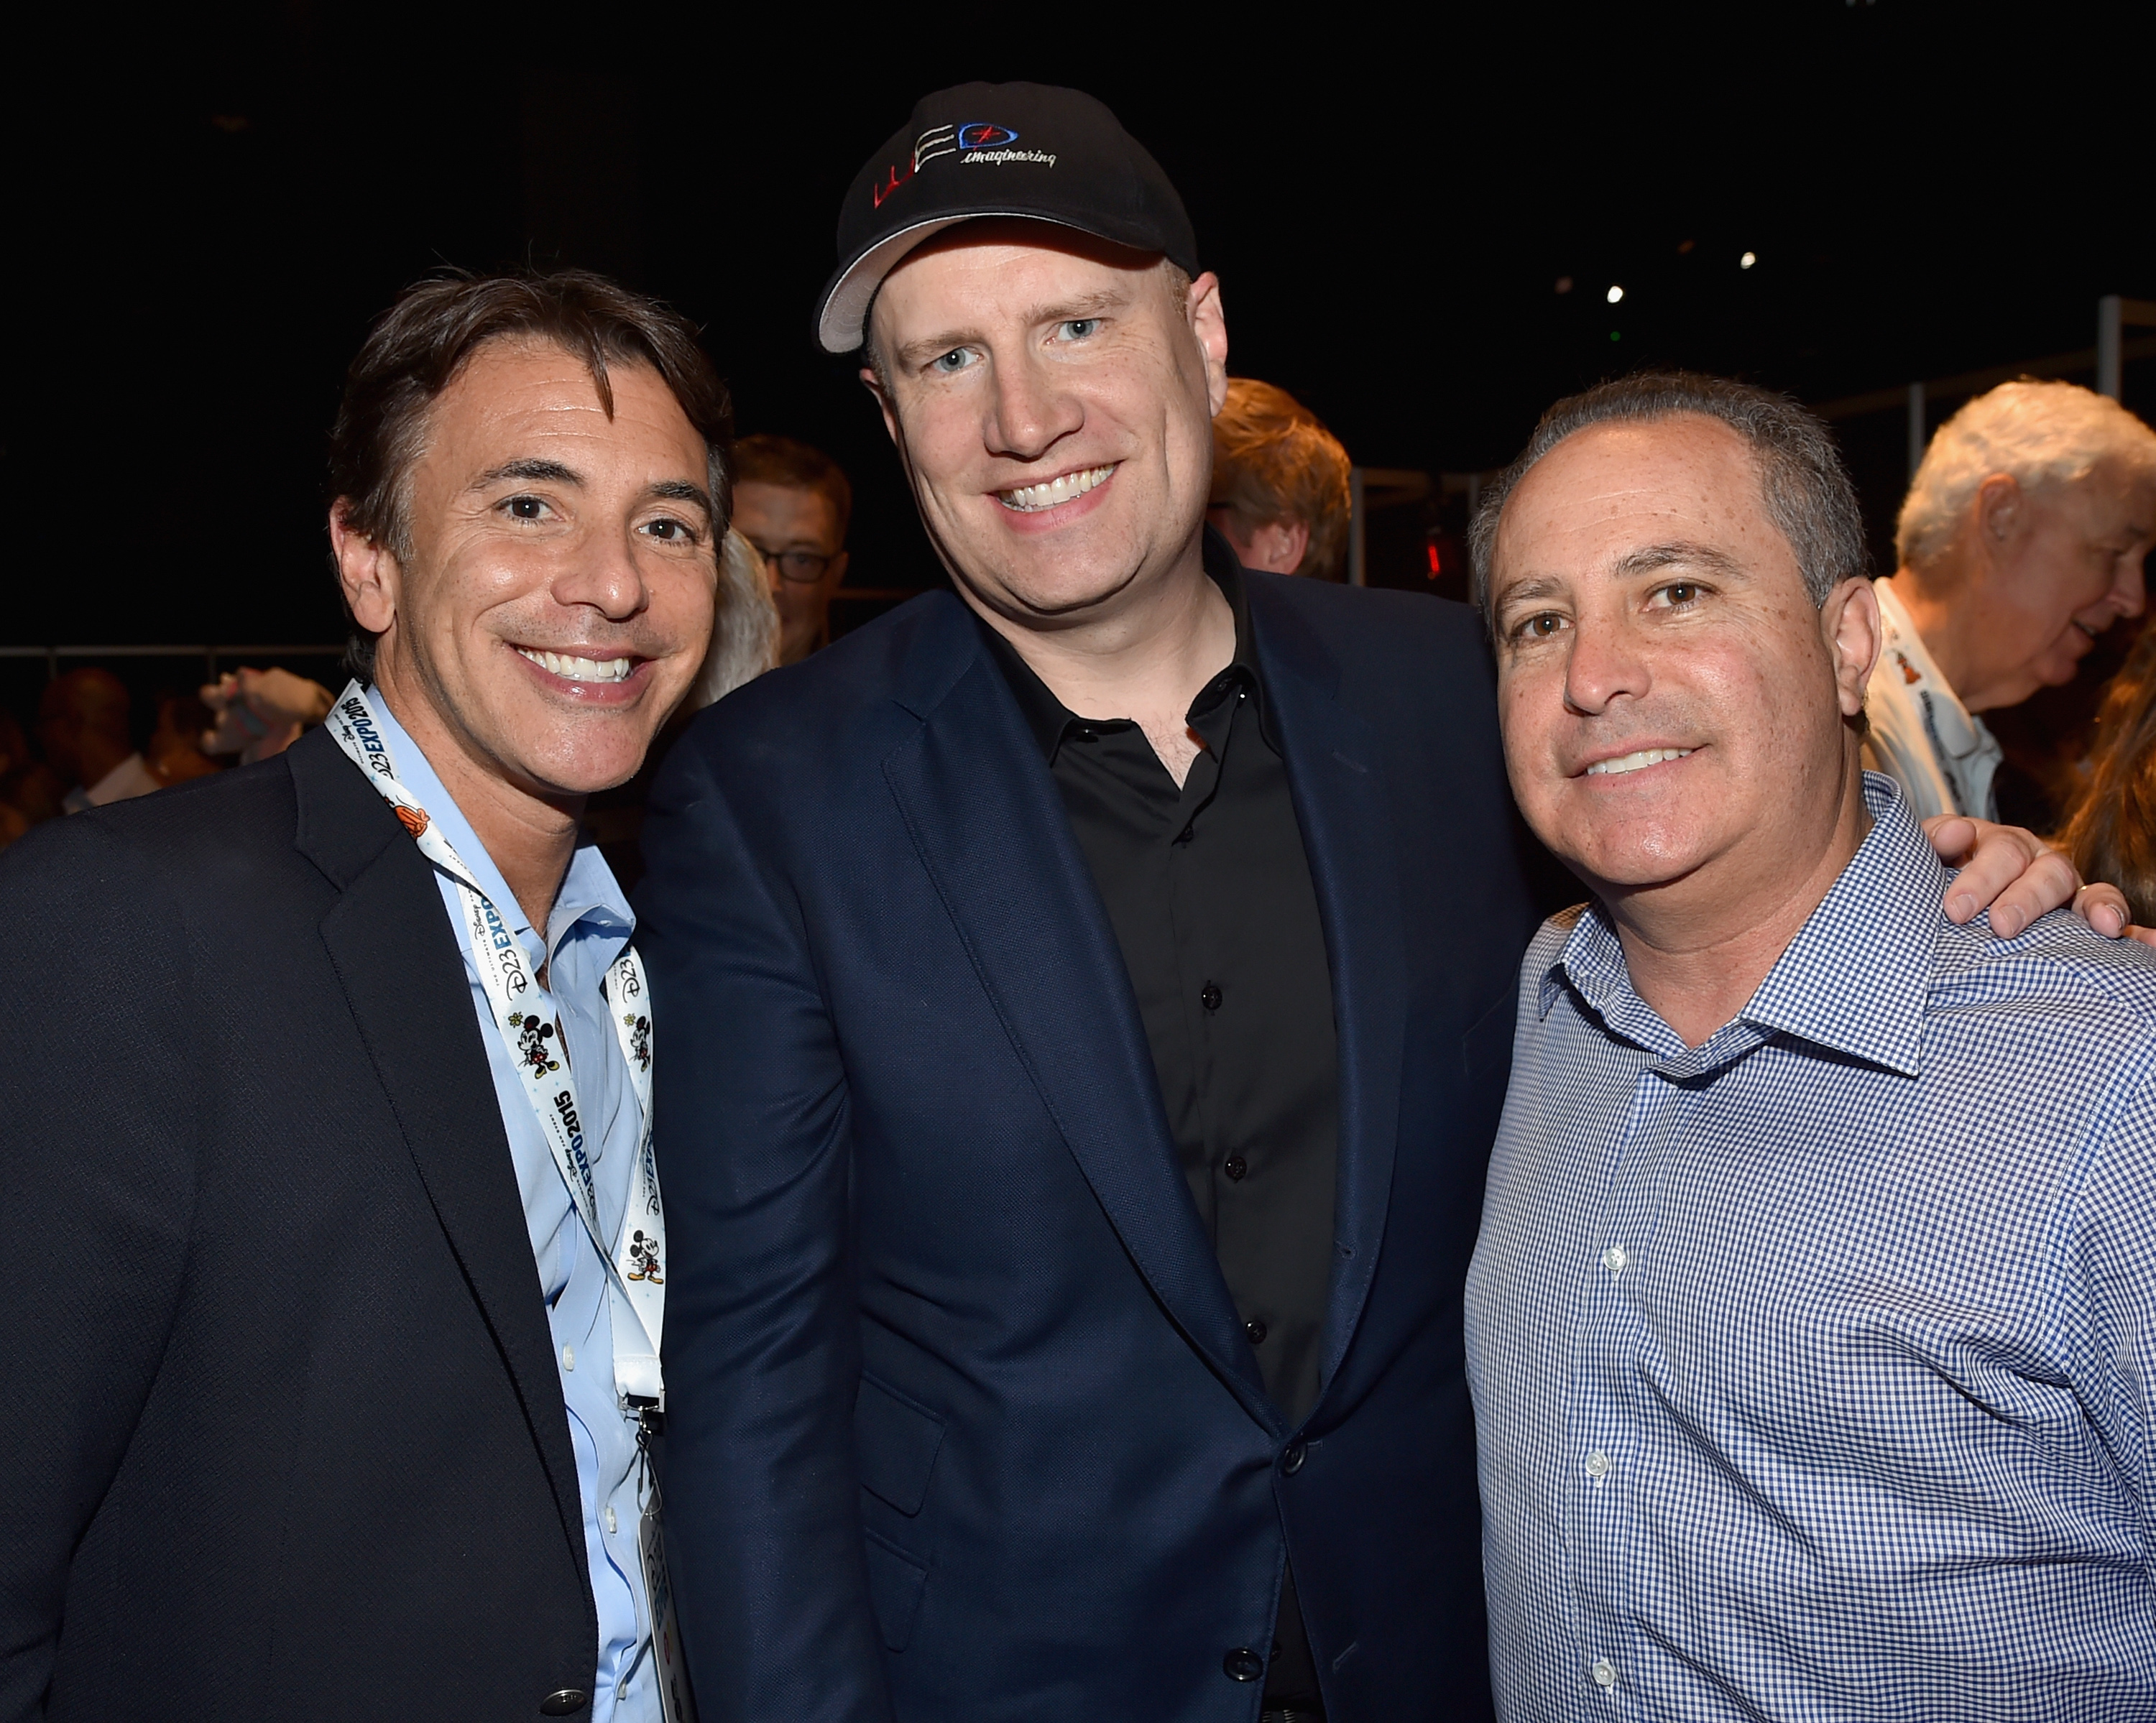 "ANAHEIM, CA - AUGUST 15: Producer Kevin Feige of CAPTAIN AMERICA: CIVIL WAR (C) with President of Marketing for The Walt Disney Studios, Ricky Strauss (L) and President, The Walt Disney Studios, Alan Bergman (R) took part today in ""Worlds, Galaxies, and Universes: Live Action at The Walt Disney Studios"" presentation at Disney's D23 EXPO 2015 in Anaheim, Calif. (Photo by Alberto E. Rodriguez/Getty Images for Disney) *** Local Caption *** Kevin Feige; Ricky Strauss; Alan Bergman"